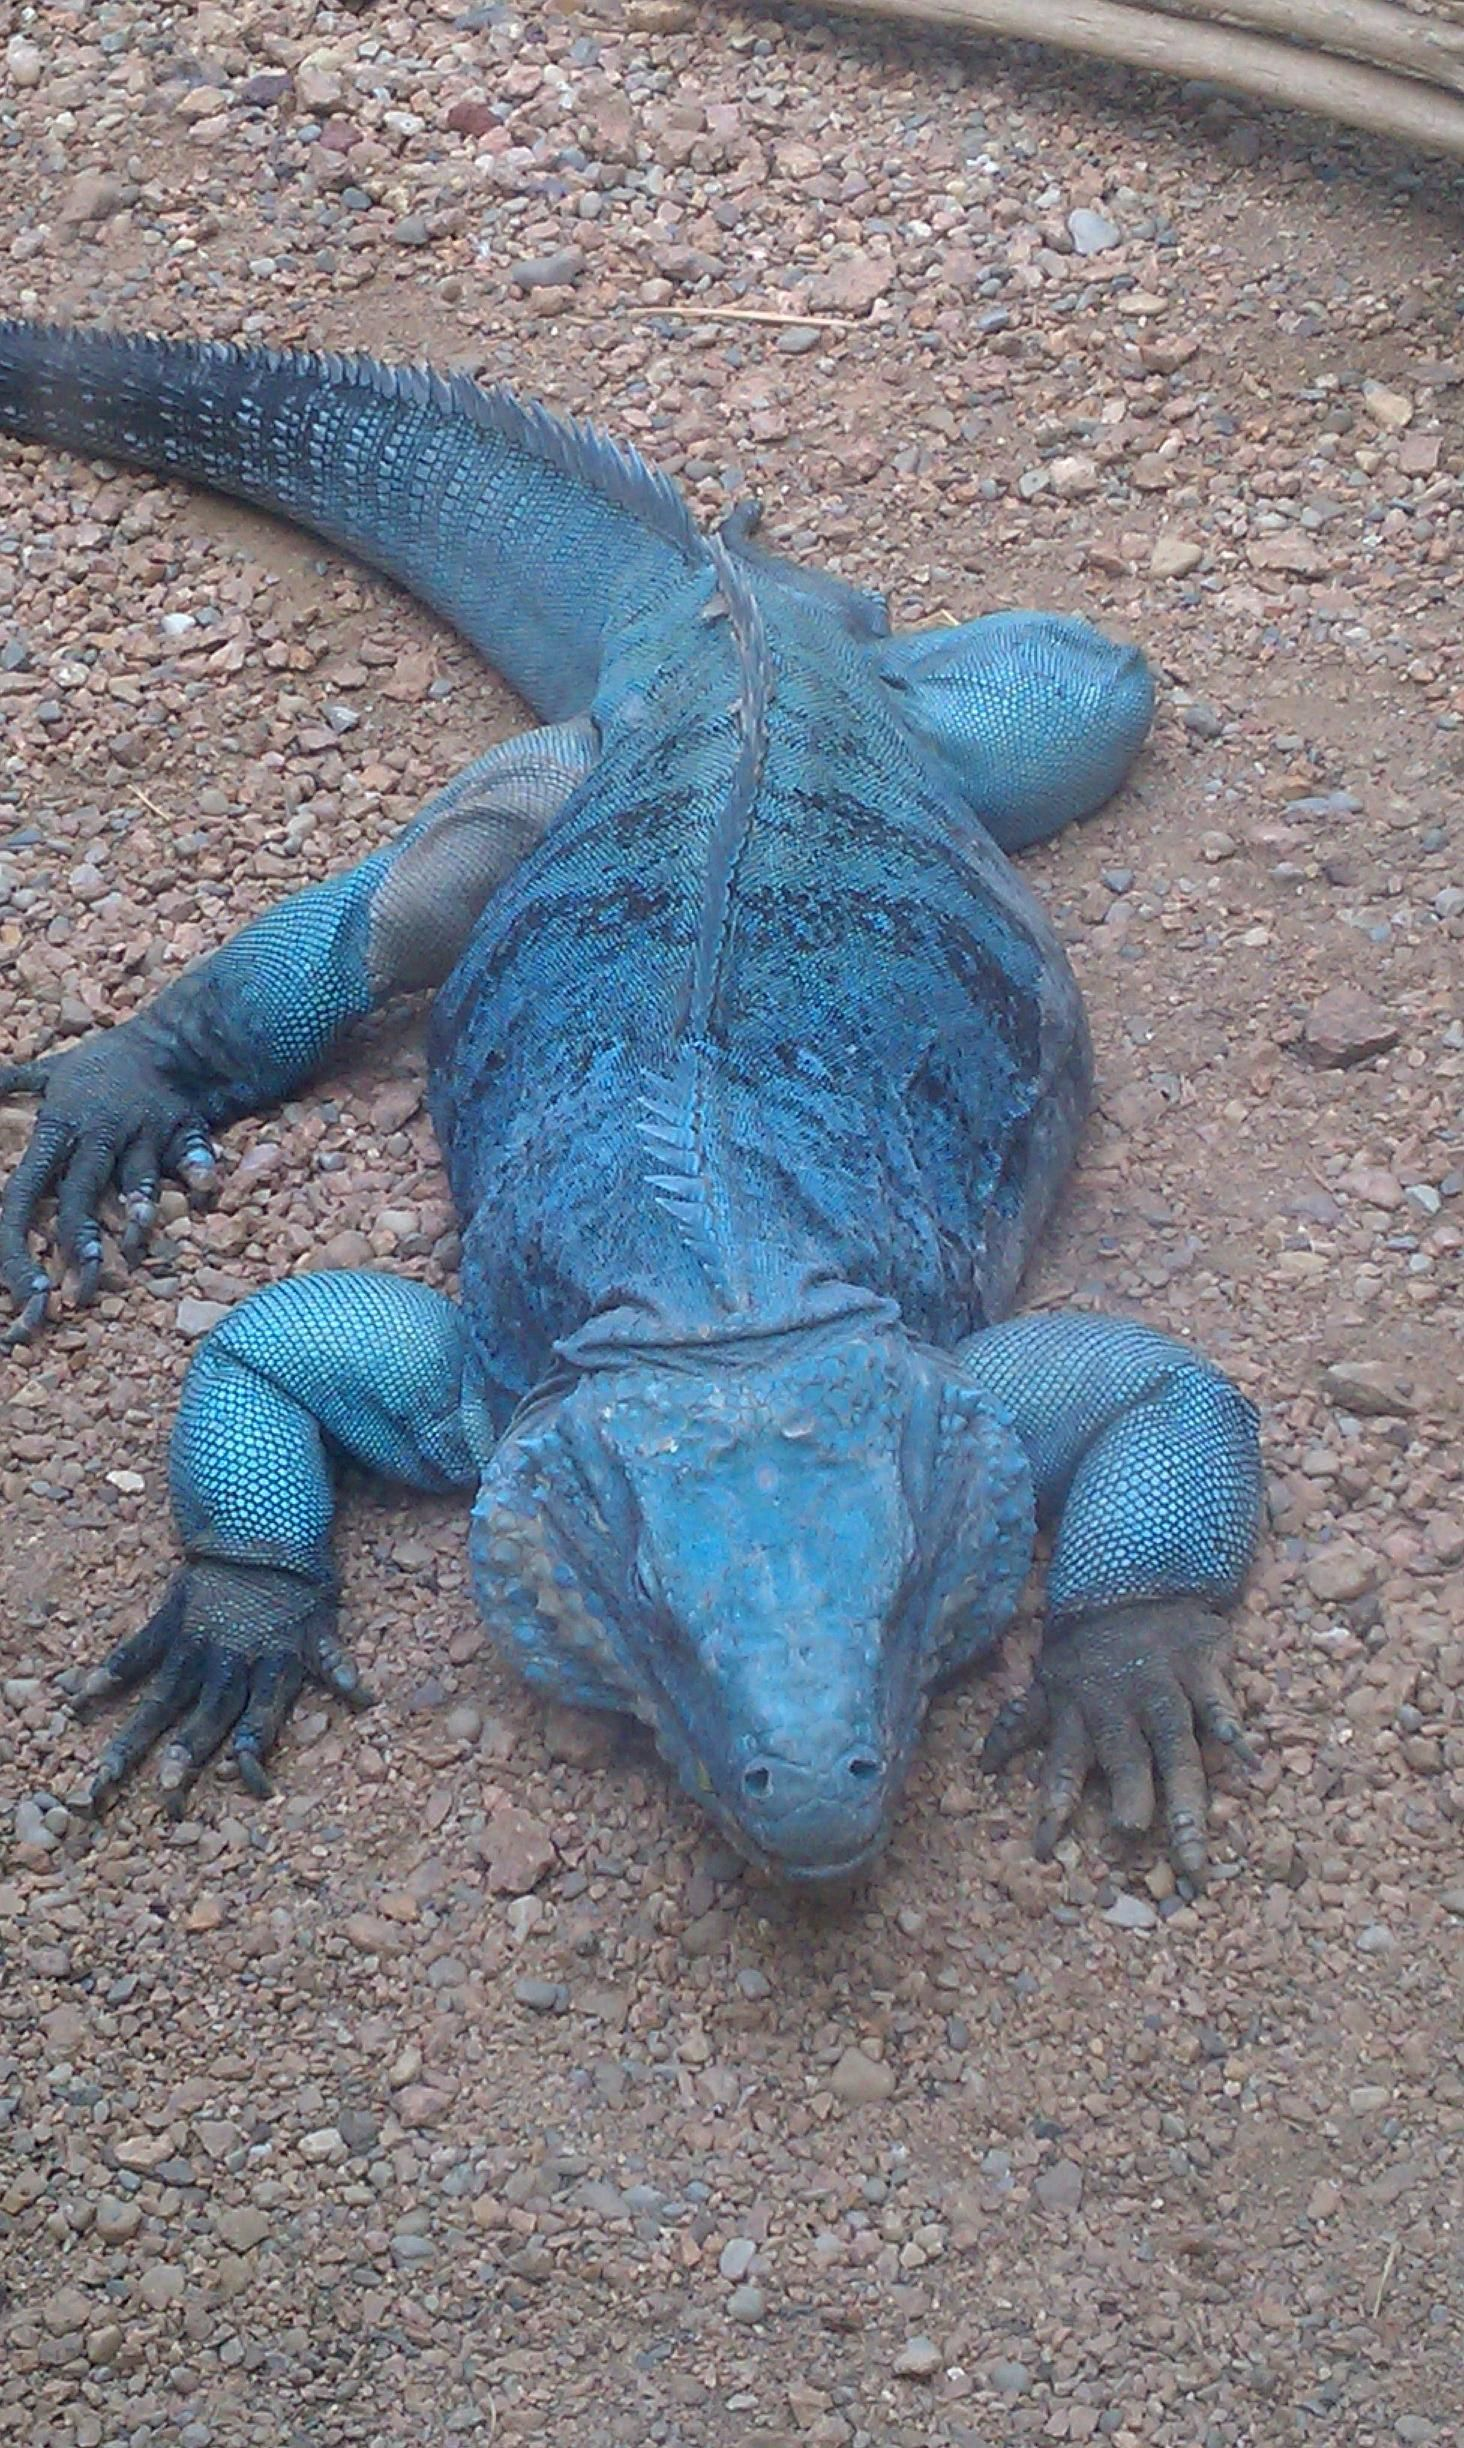 This Is A BIG Fella Grand Cayman Blue Iguana Or Island An Endangered Species Of Lizard The Genus Cyclura Endemic To